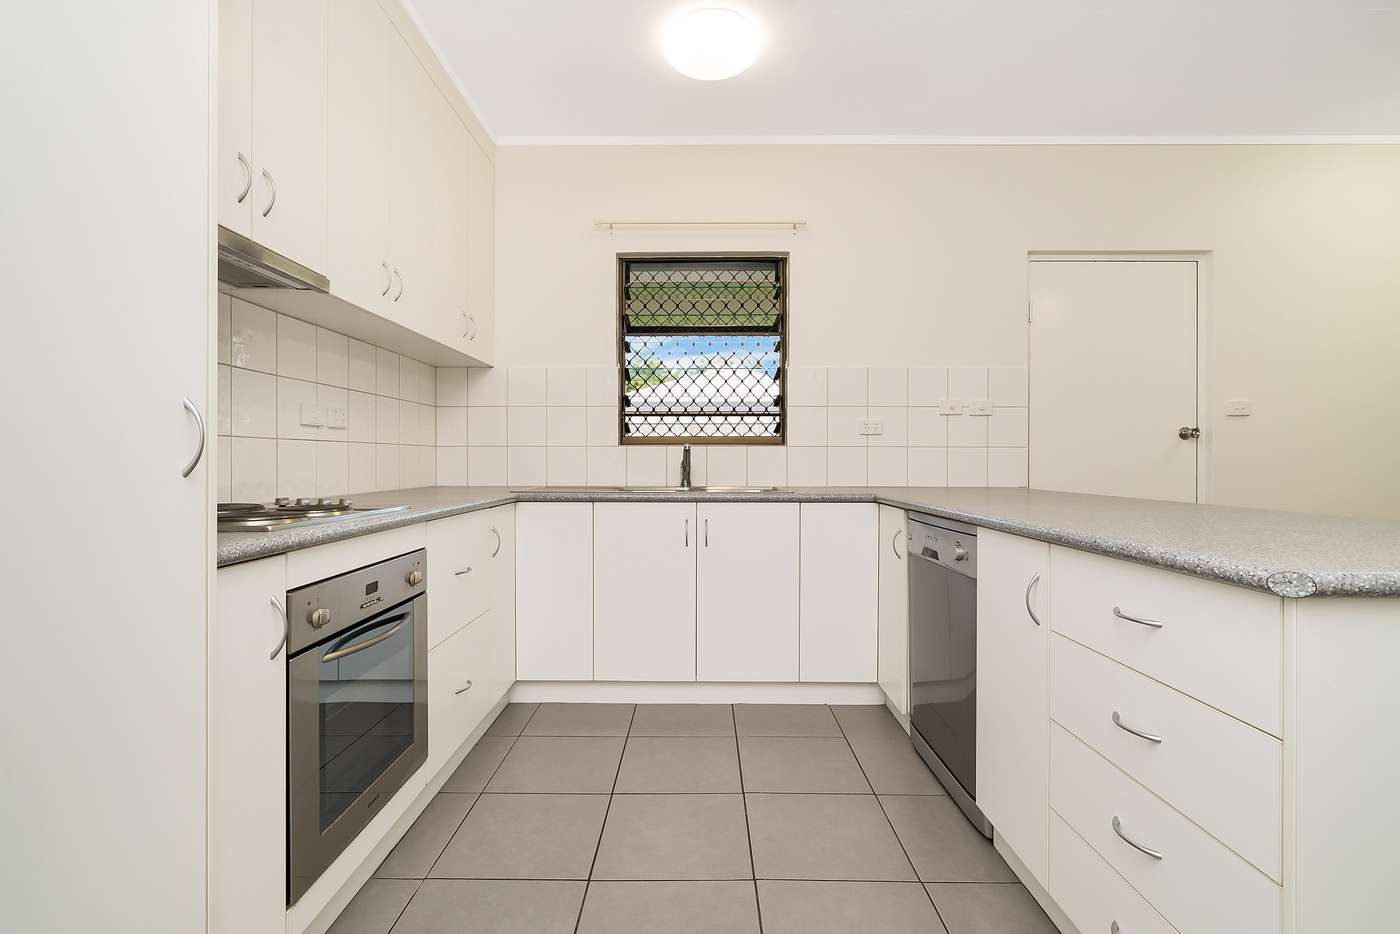 Main view of Homely house listing, 24 Kestrel Circuit, Wulagi NT 812